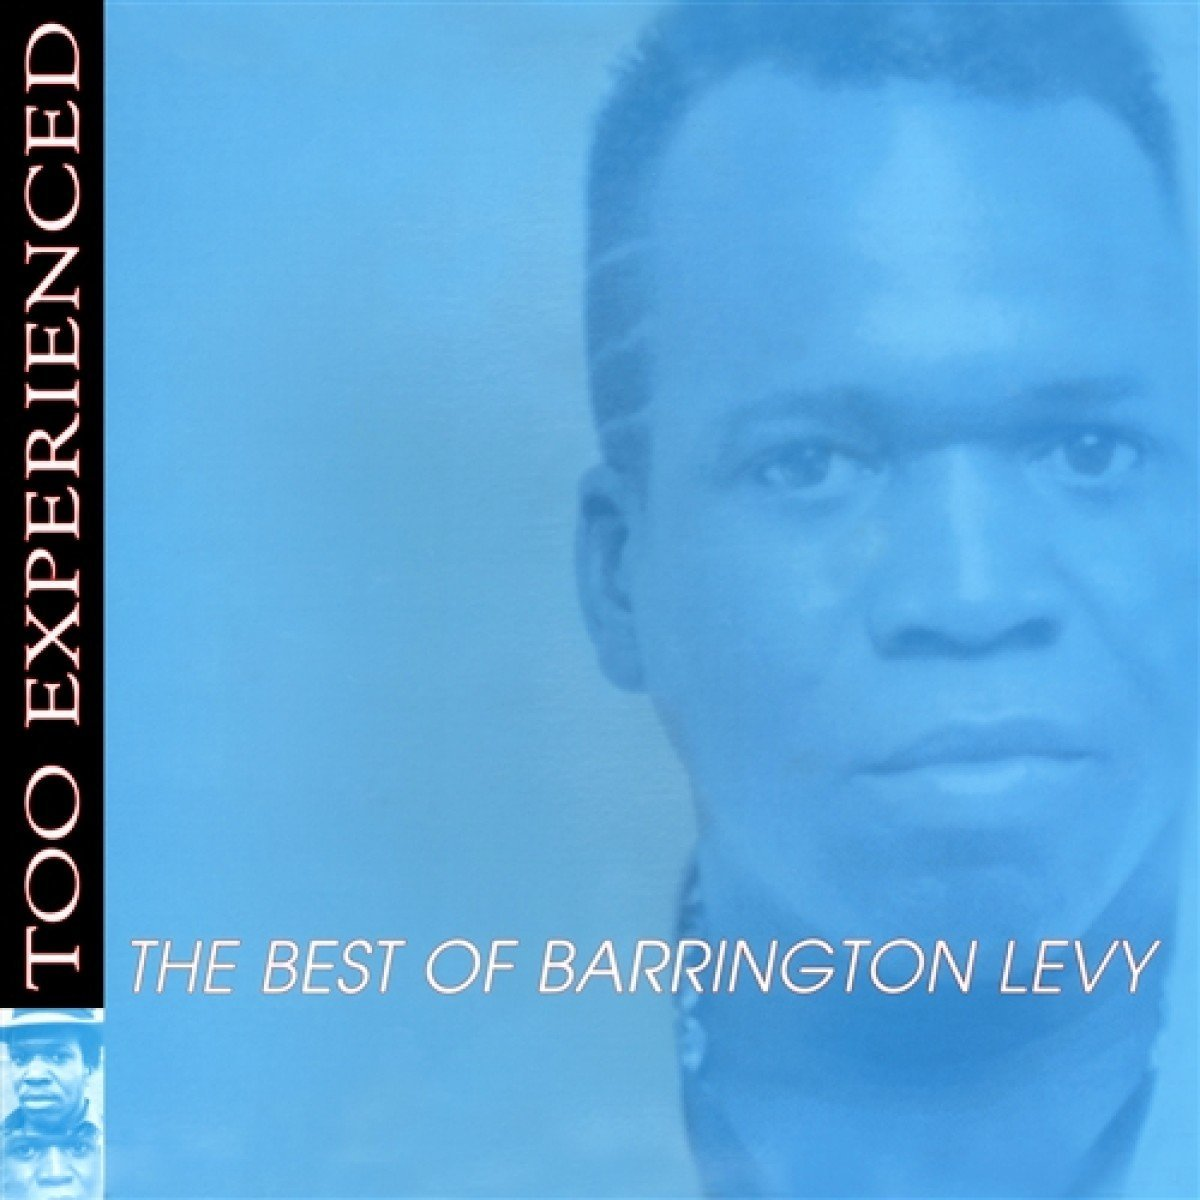 Barrington_Levy__49d266a54dc8e.jpg